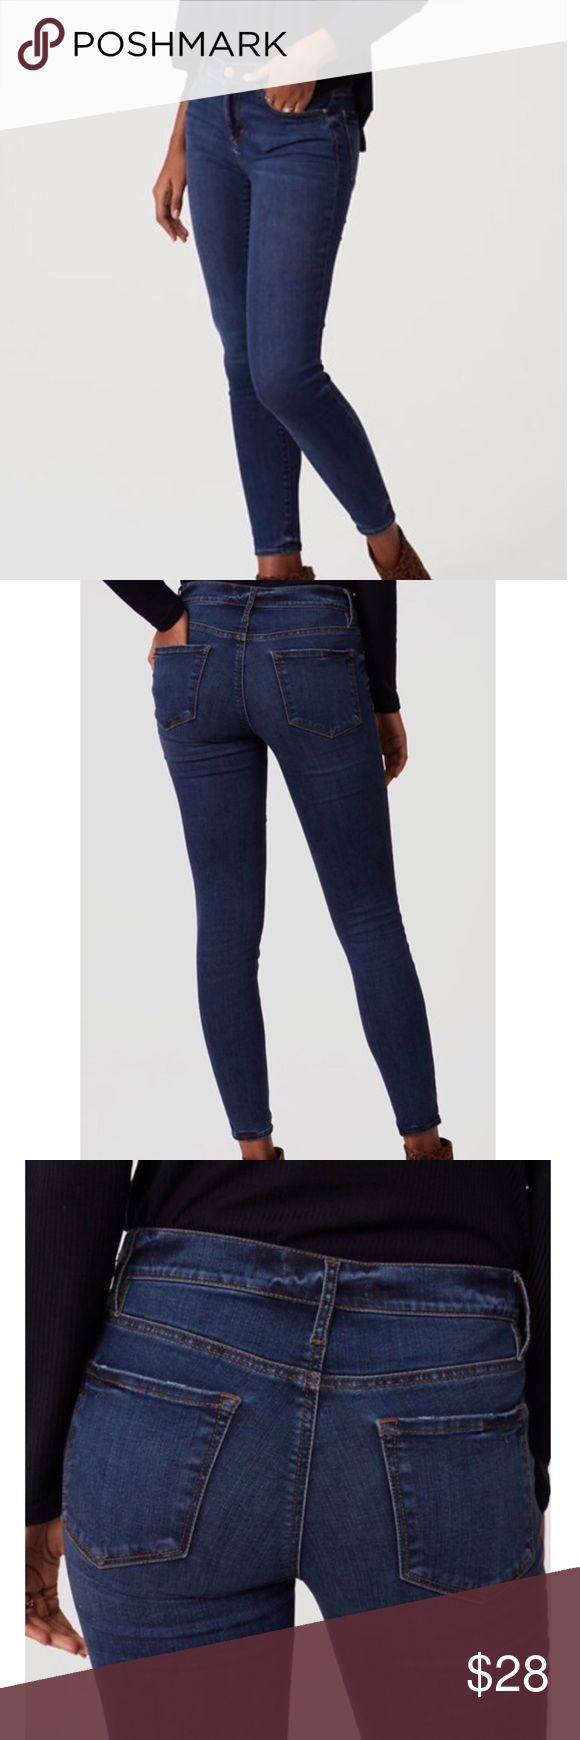 Loft Petite Denim Leggings in Vivid Indigo Wash Only worn once!! Petite Legging jeans give the comfort of a legging with the appearance and feel of skinny jeans. The authentic indigo wash is flattering and slimming, wearable day or night. Machine washable. LOFT Jeans Skinny